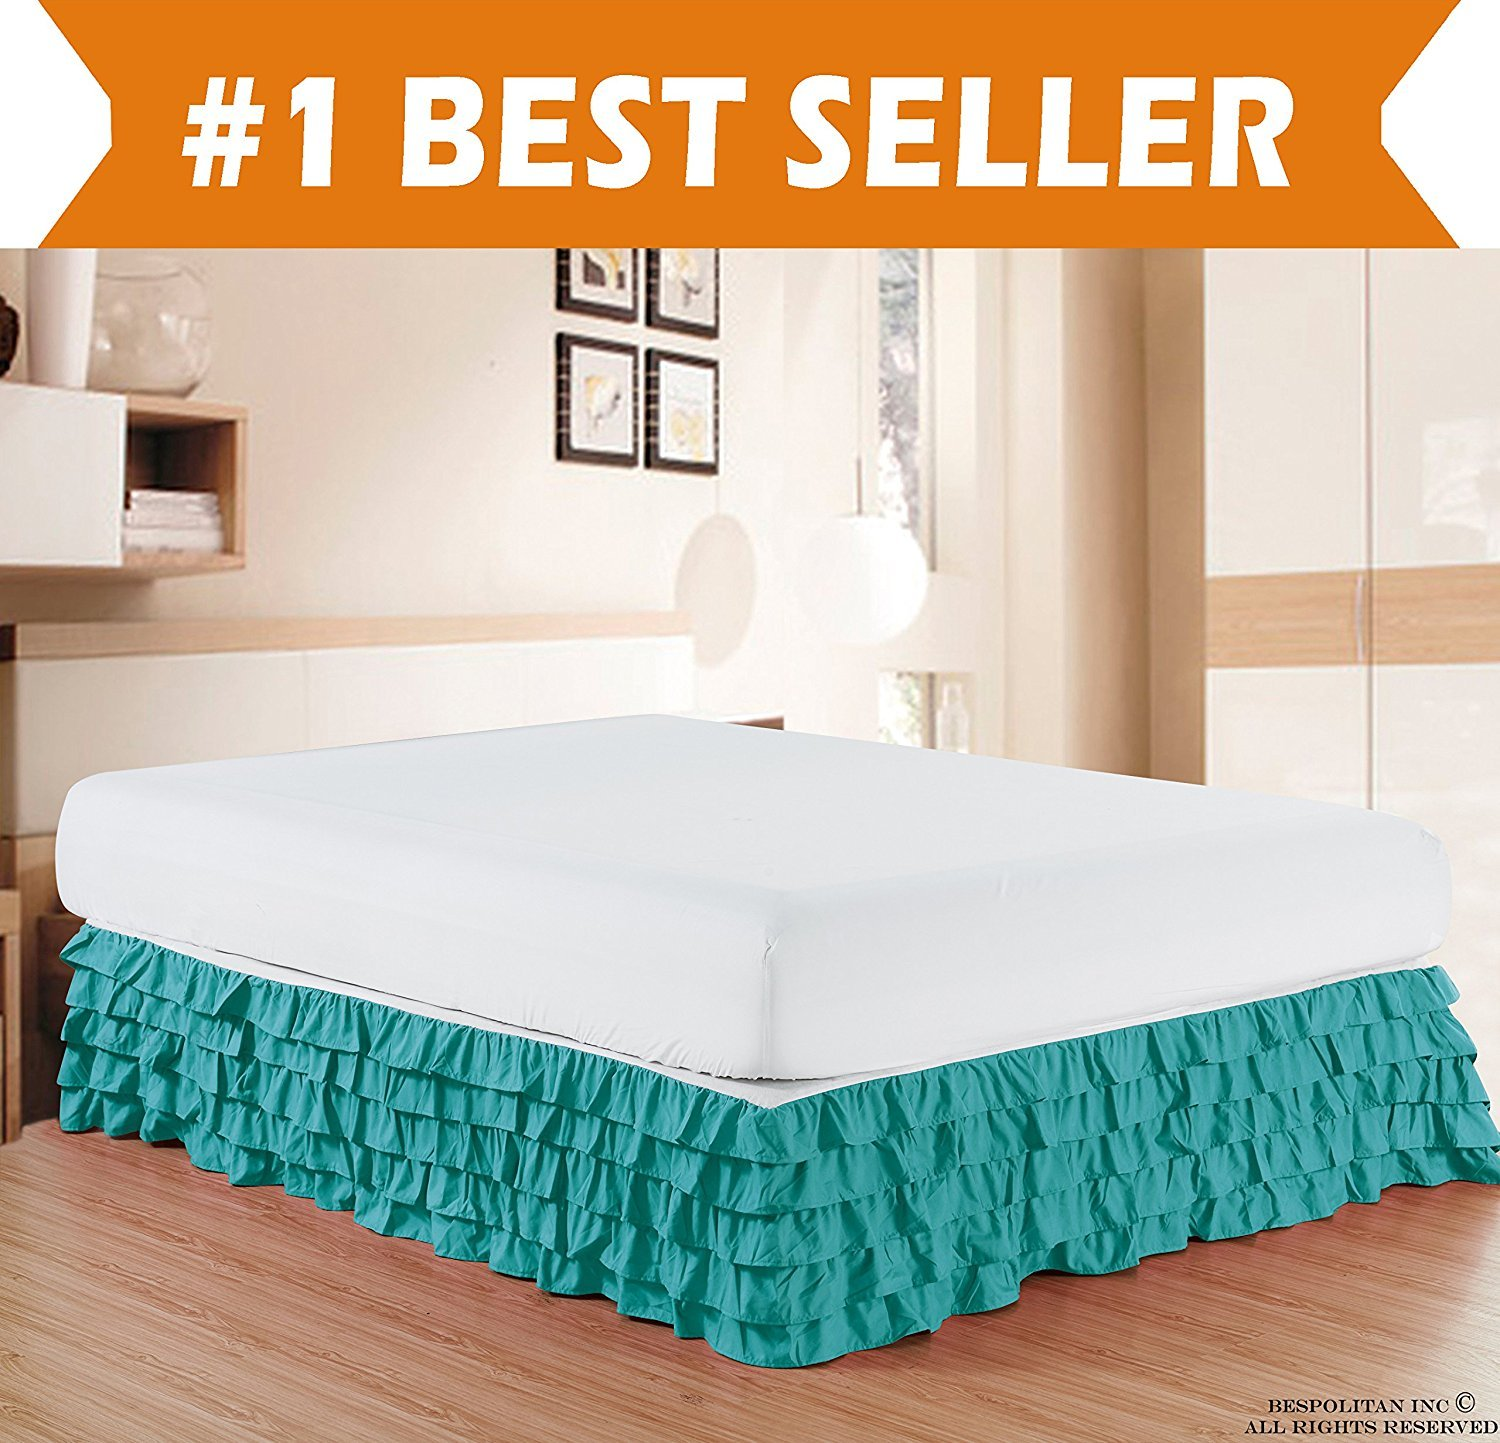 Microfiber Multi-Ruffle Bed Skirt - 15 inch Drop, Twin, Turquoise